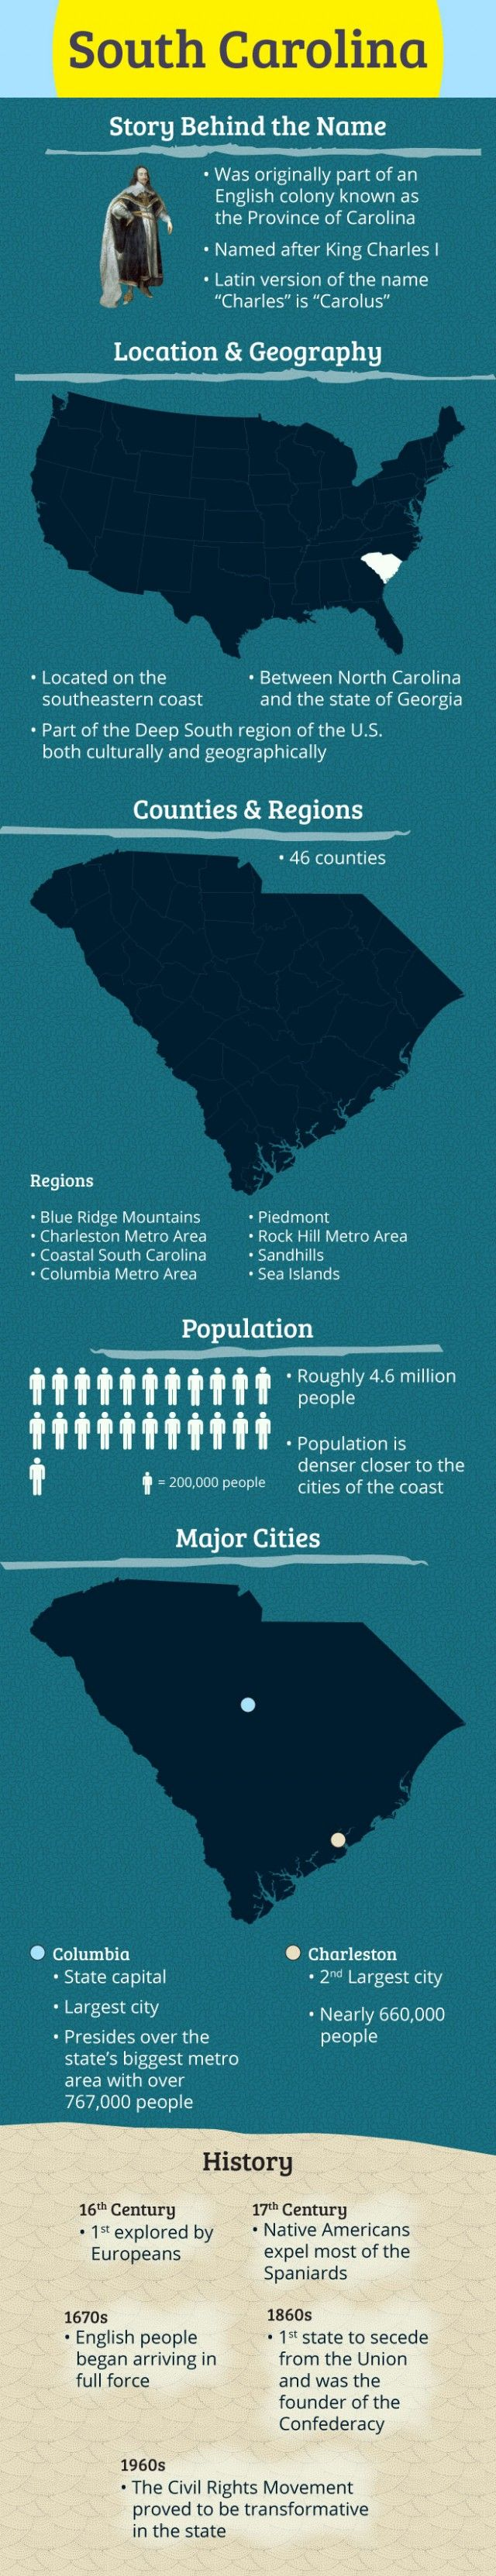 South Carolina Infographic - A Little History